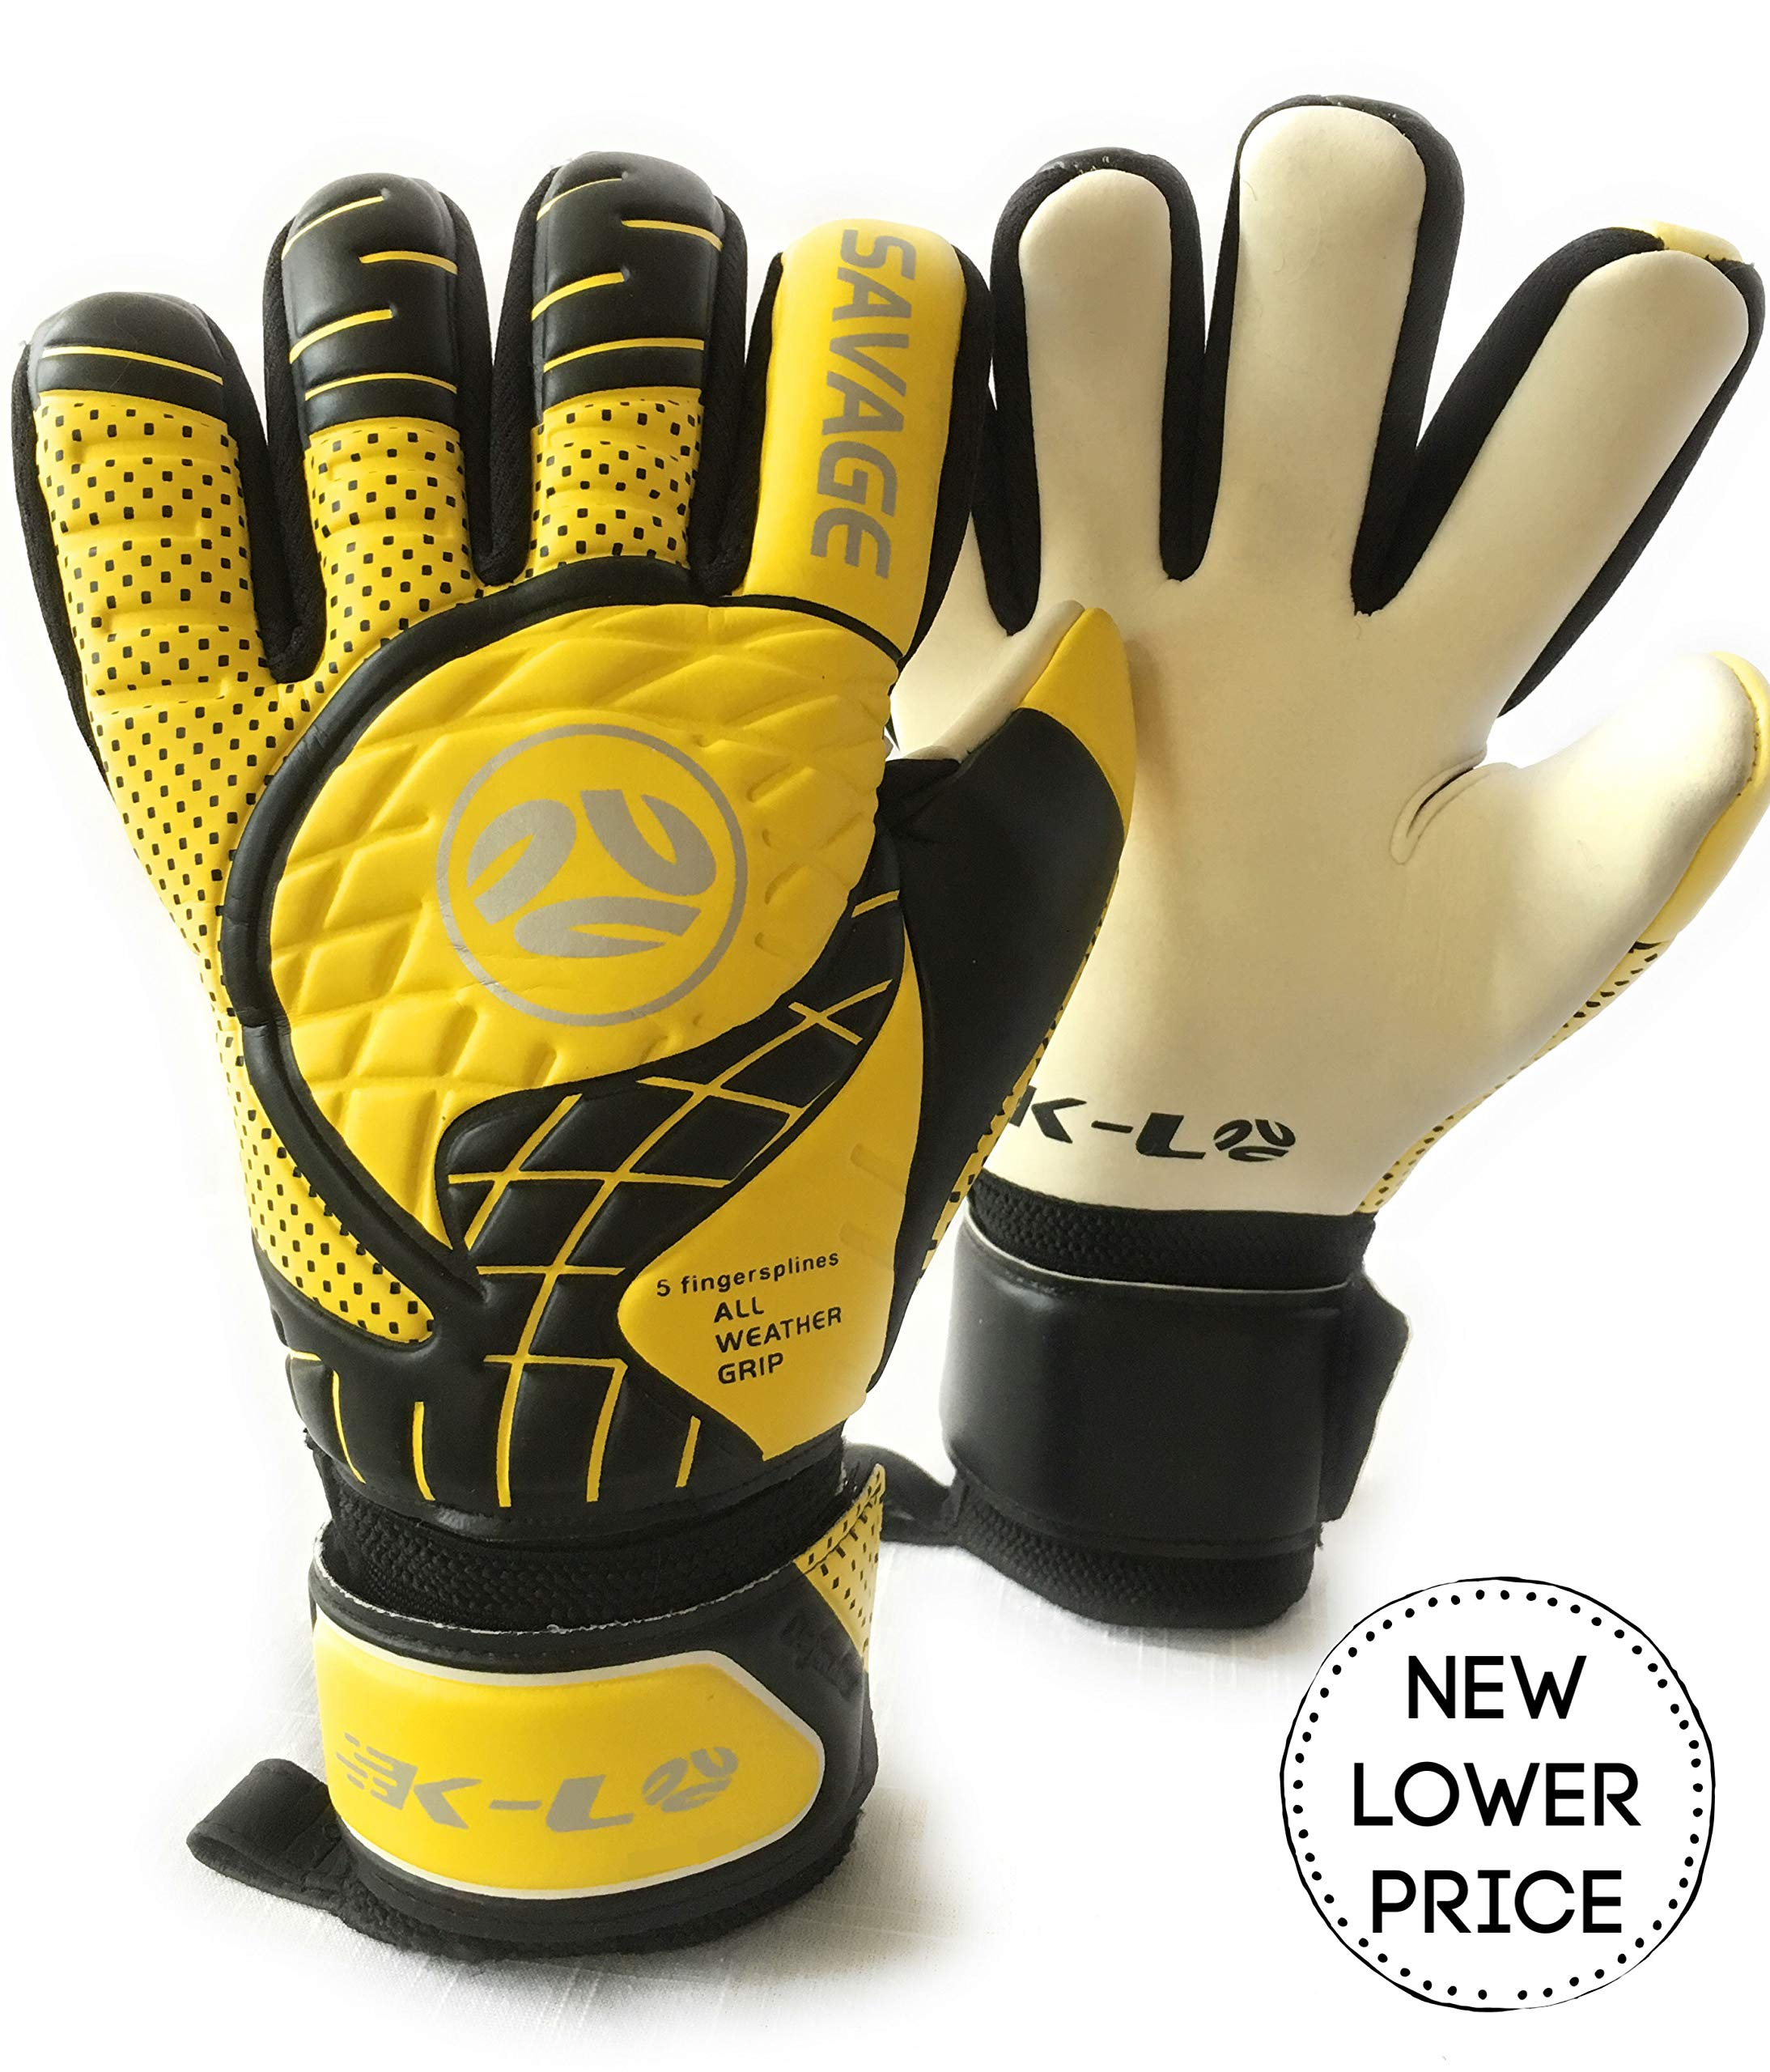 FINGERSAVE Goalkeeper Gloves by K-LO - The Savage Goalie Glove Has  Fingersave Protection in 262904178b